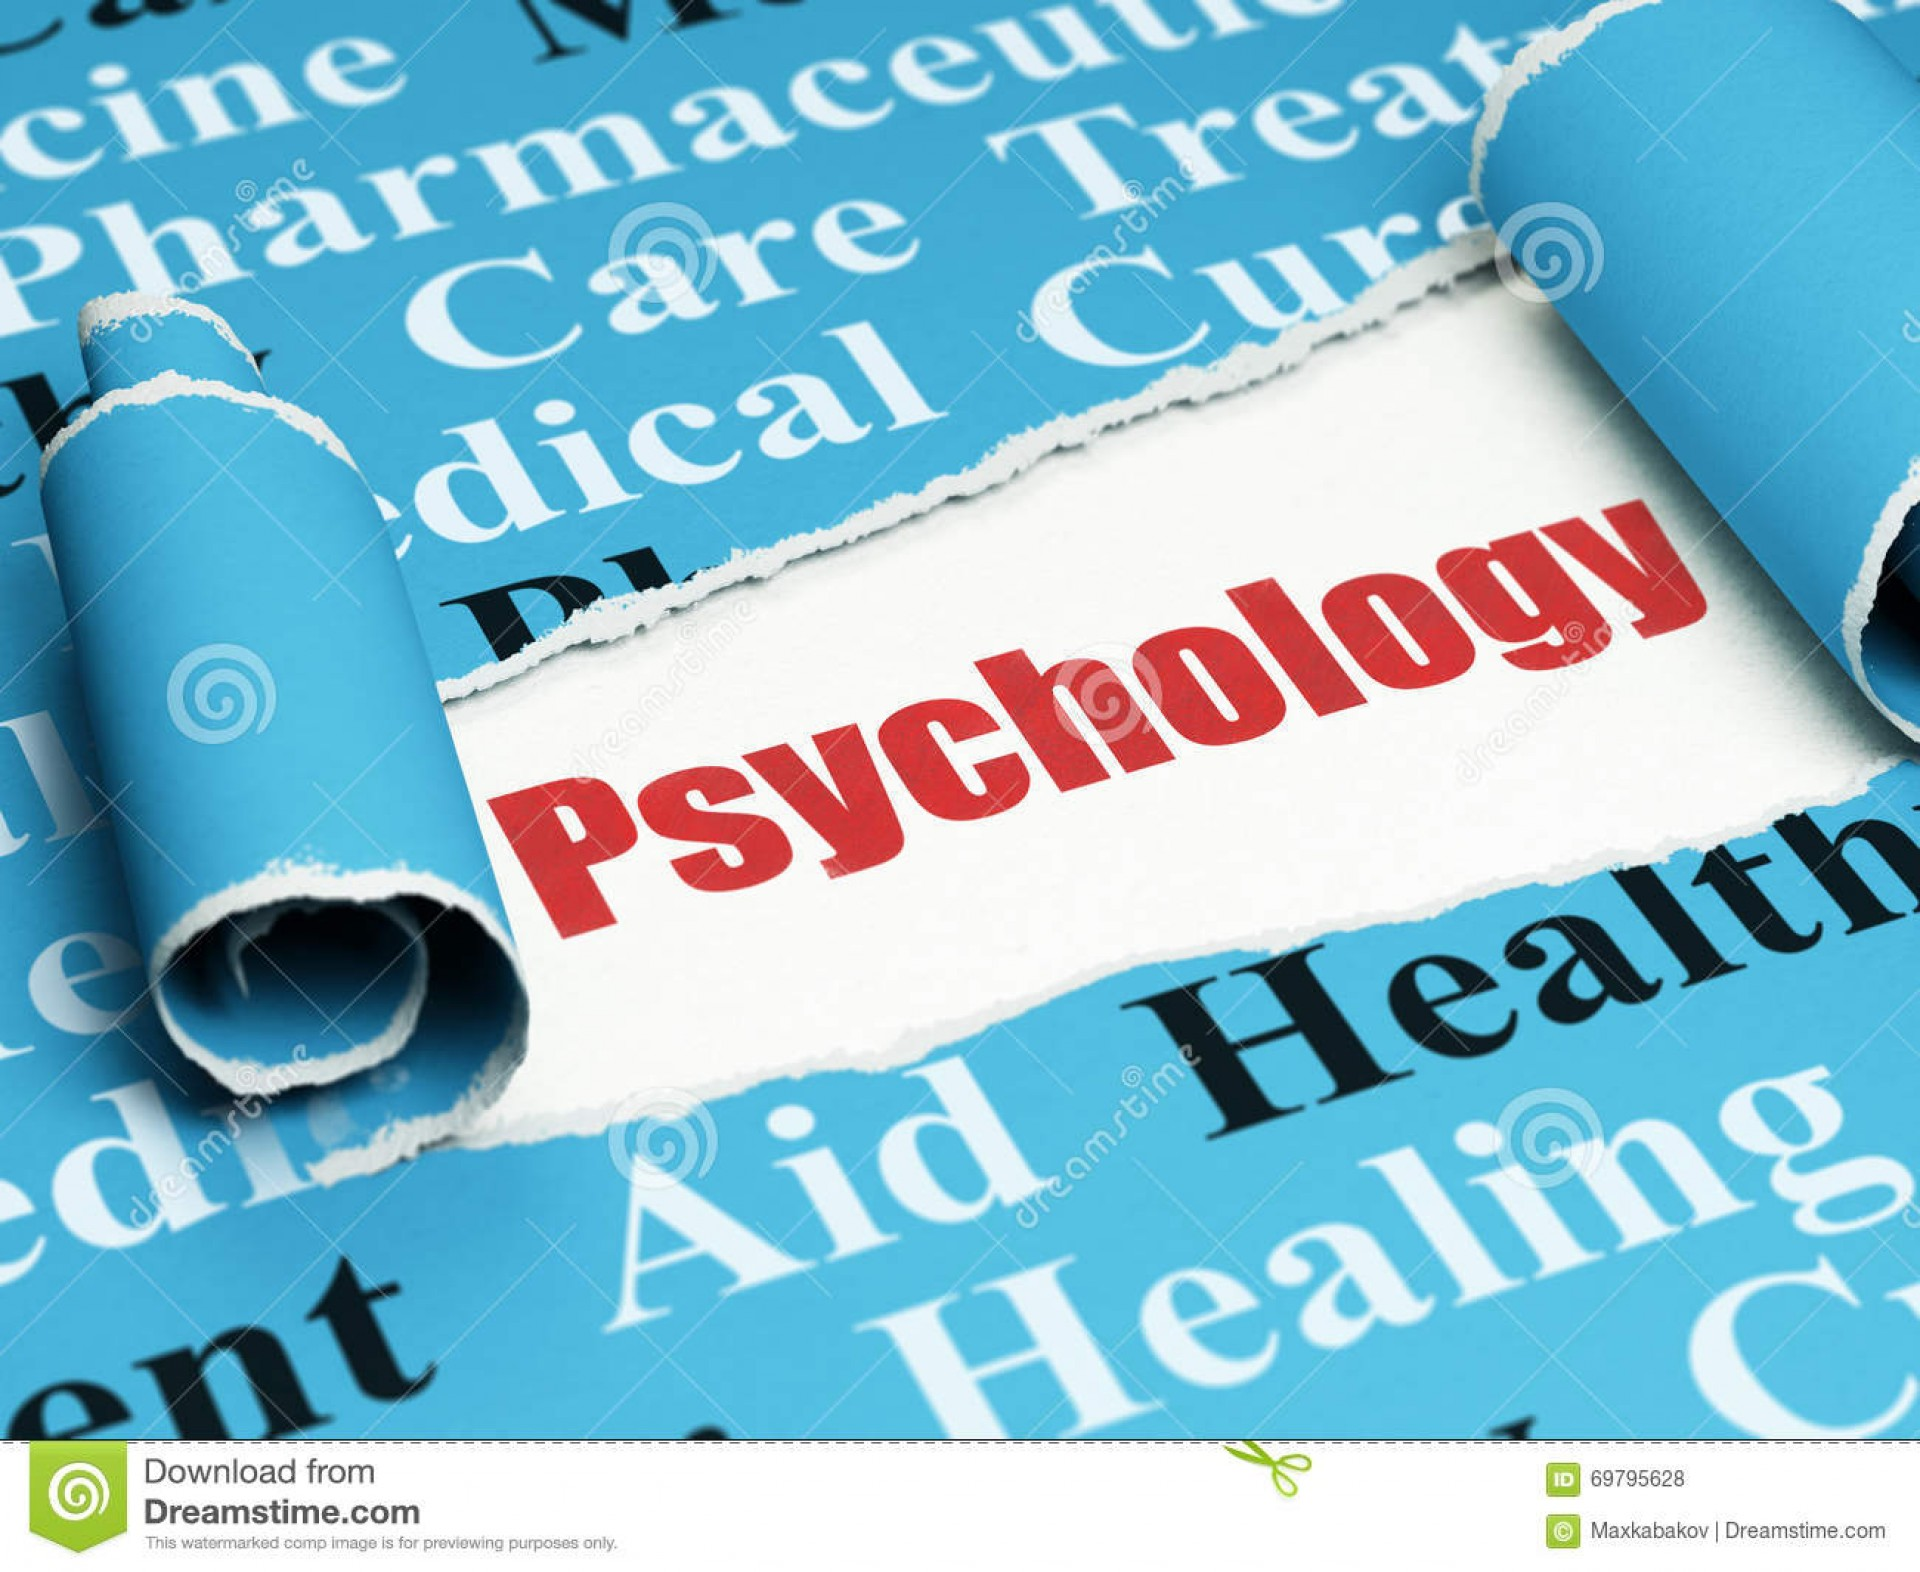 010 Research Paper Psychology On Dreams Health Concept Red Text Under Piece Torn Curled Blue Tag Cloud Rendering Singular Topics Articles 1920